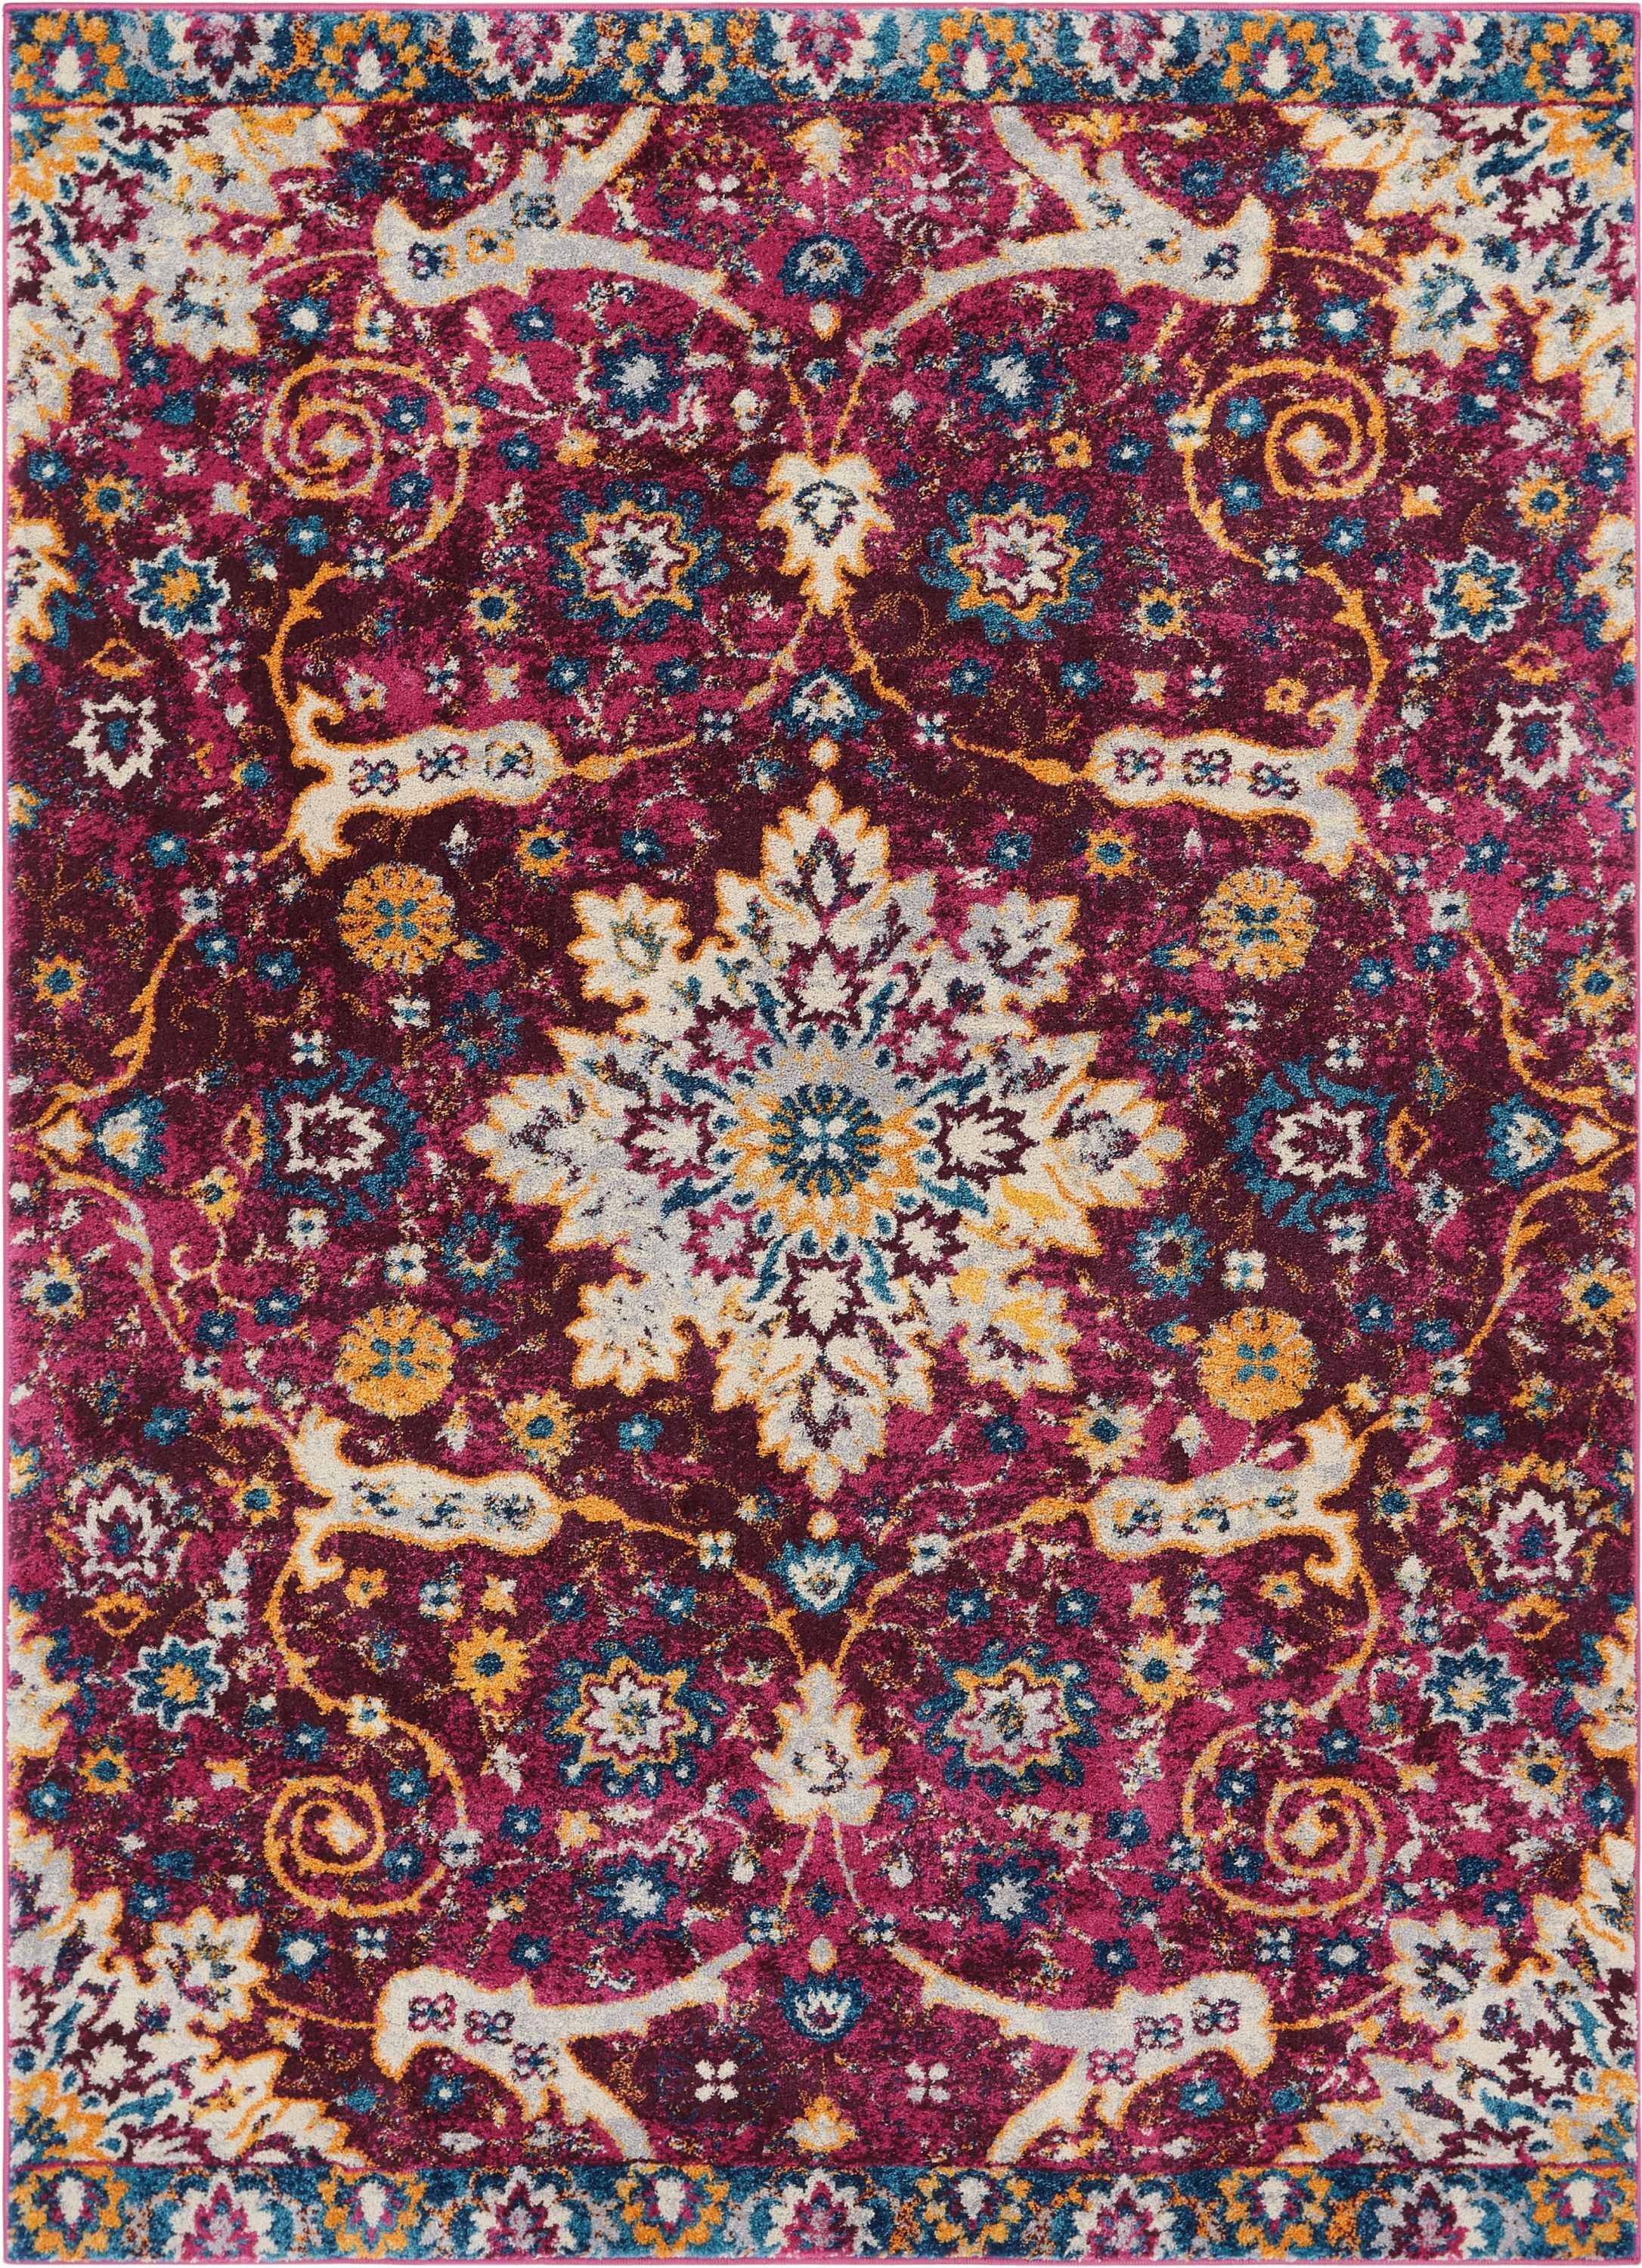 Binstead Wonderly Modern Persian Oriental Floral Lavendar Area Rug Rug Size: Rectangle 5'3